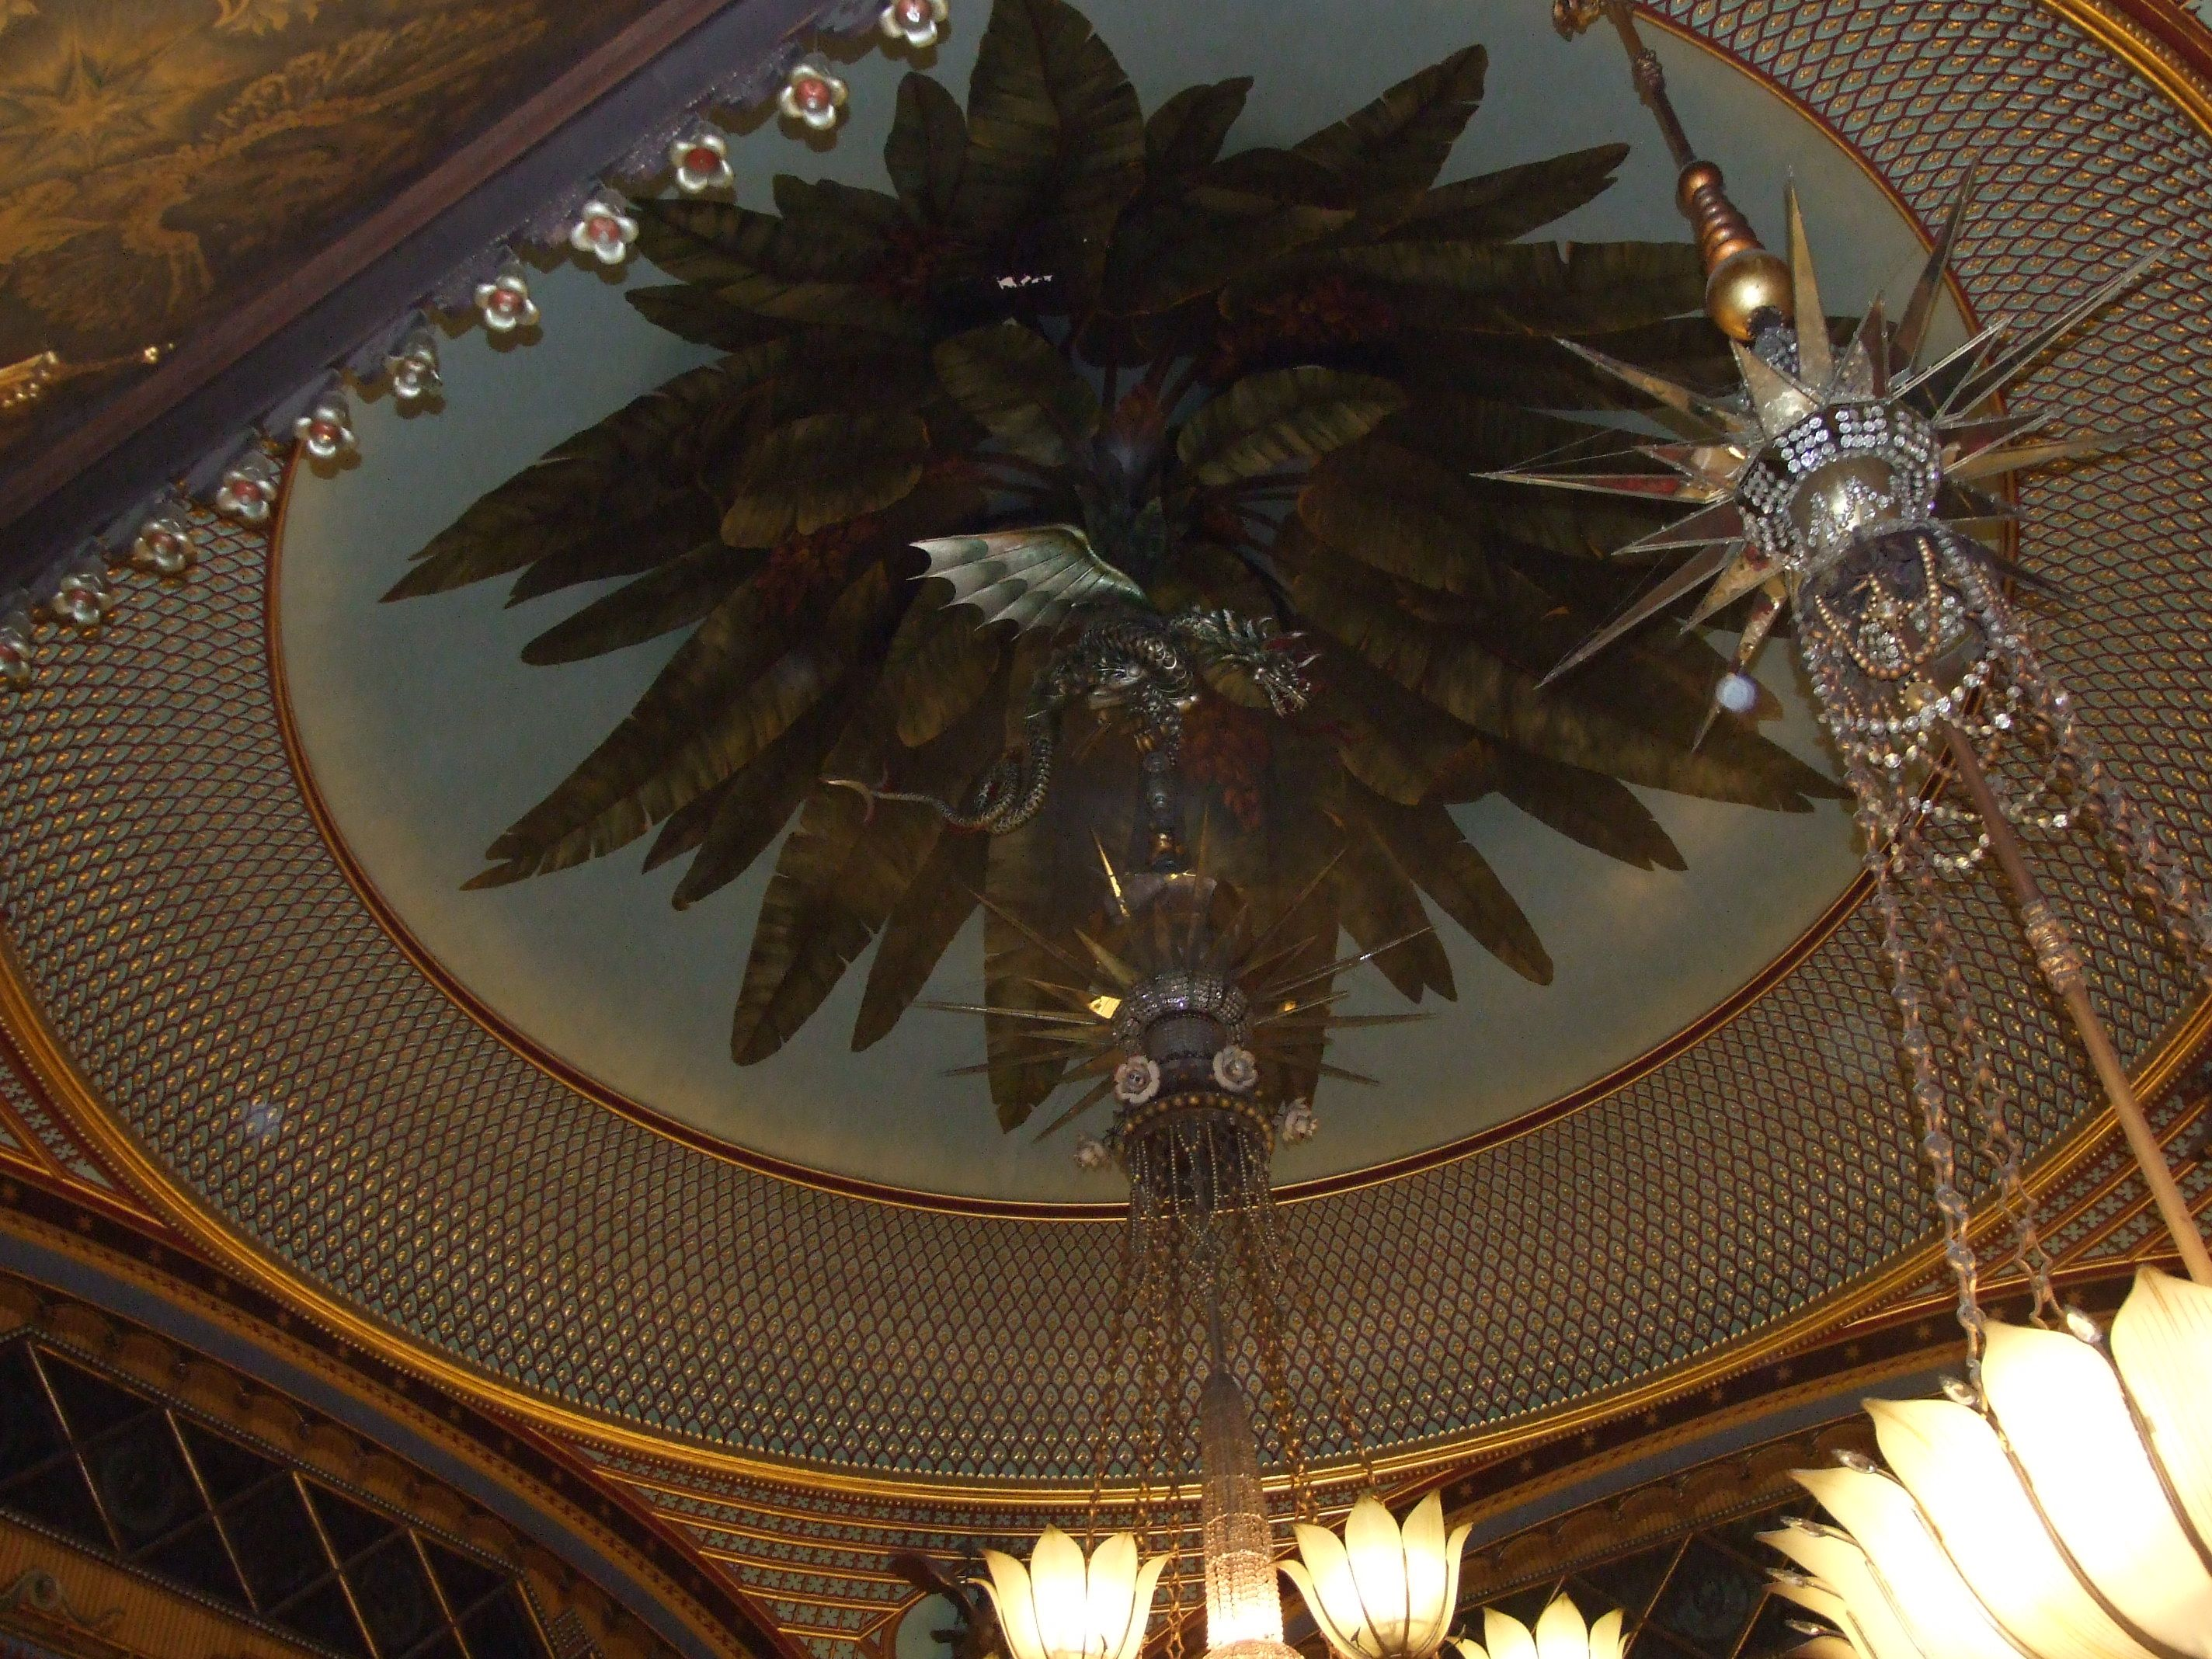 The fantastical Dragon chandelier in the Banqueting room of the